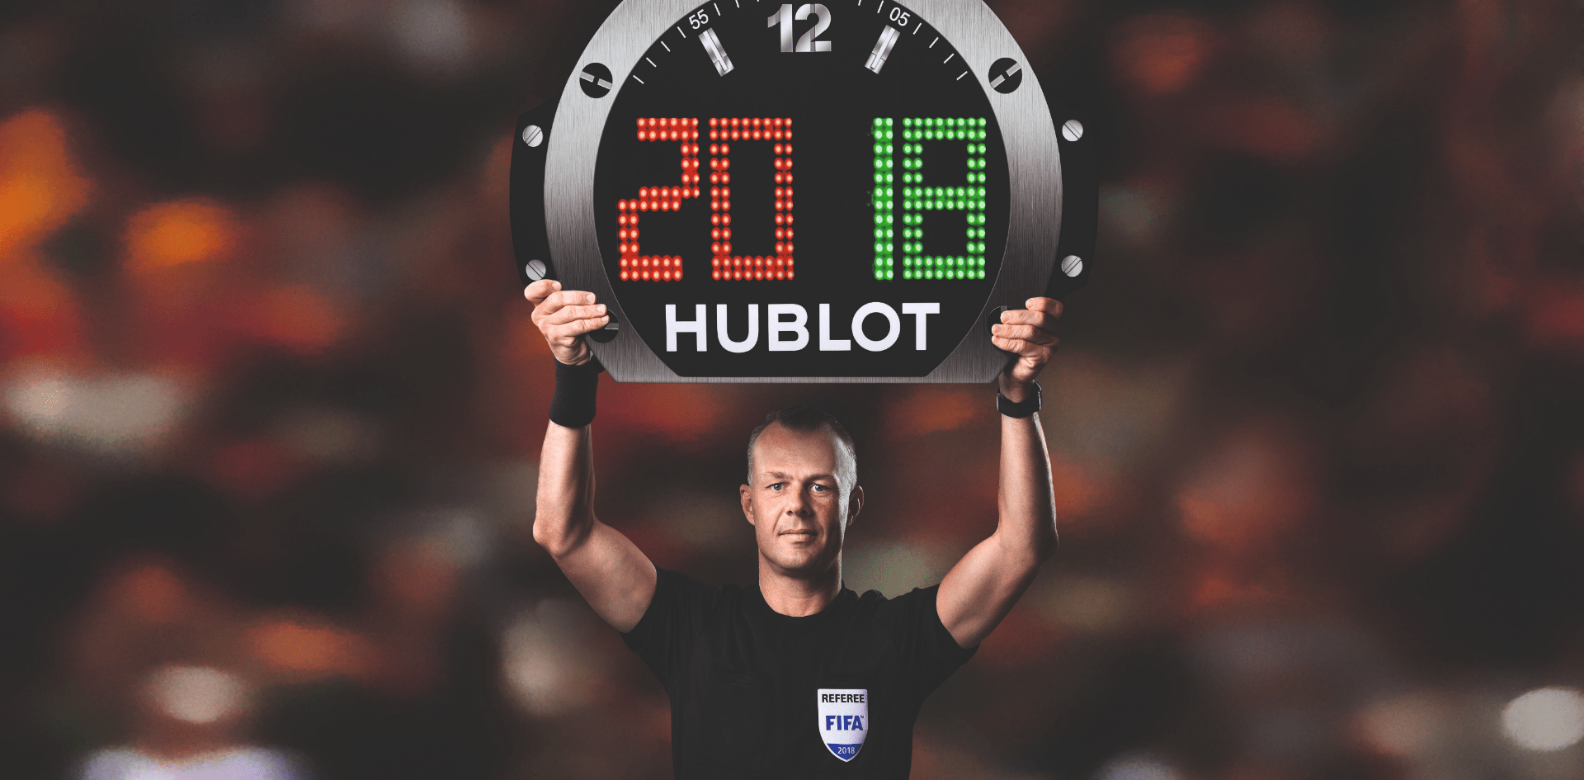 Hublot is the official timekeeper of World Cup 2018 (Photo: Hublot)